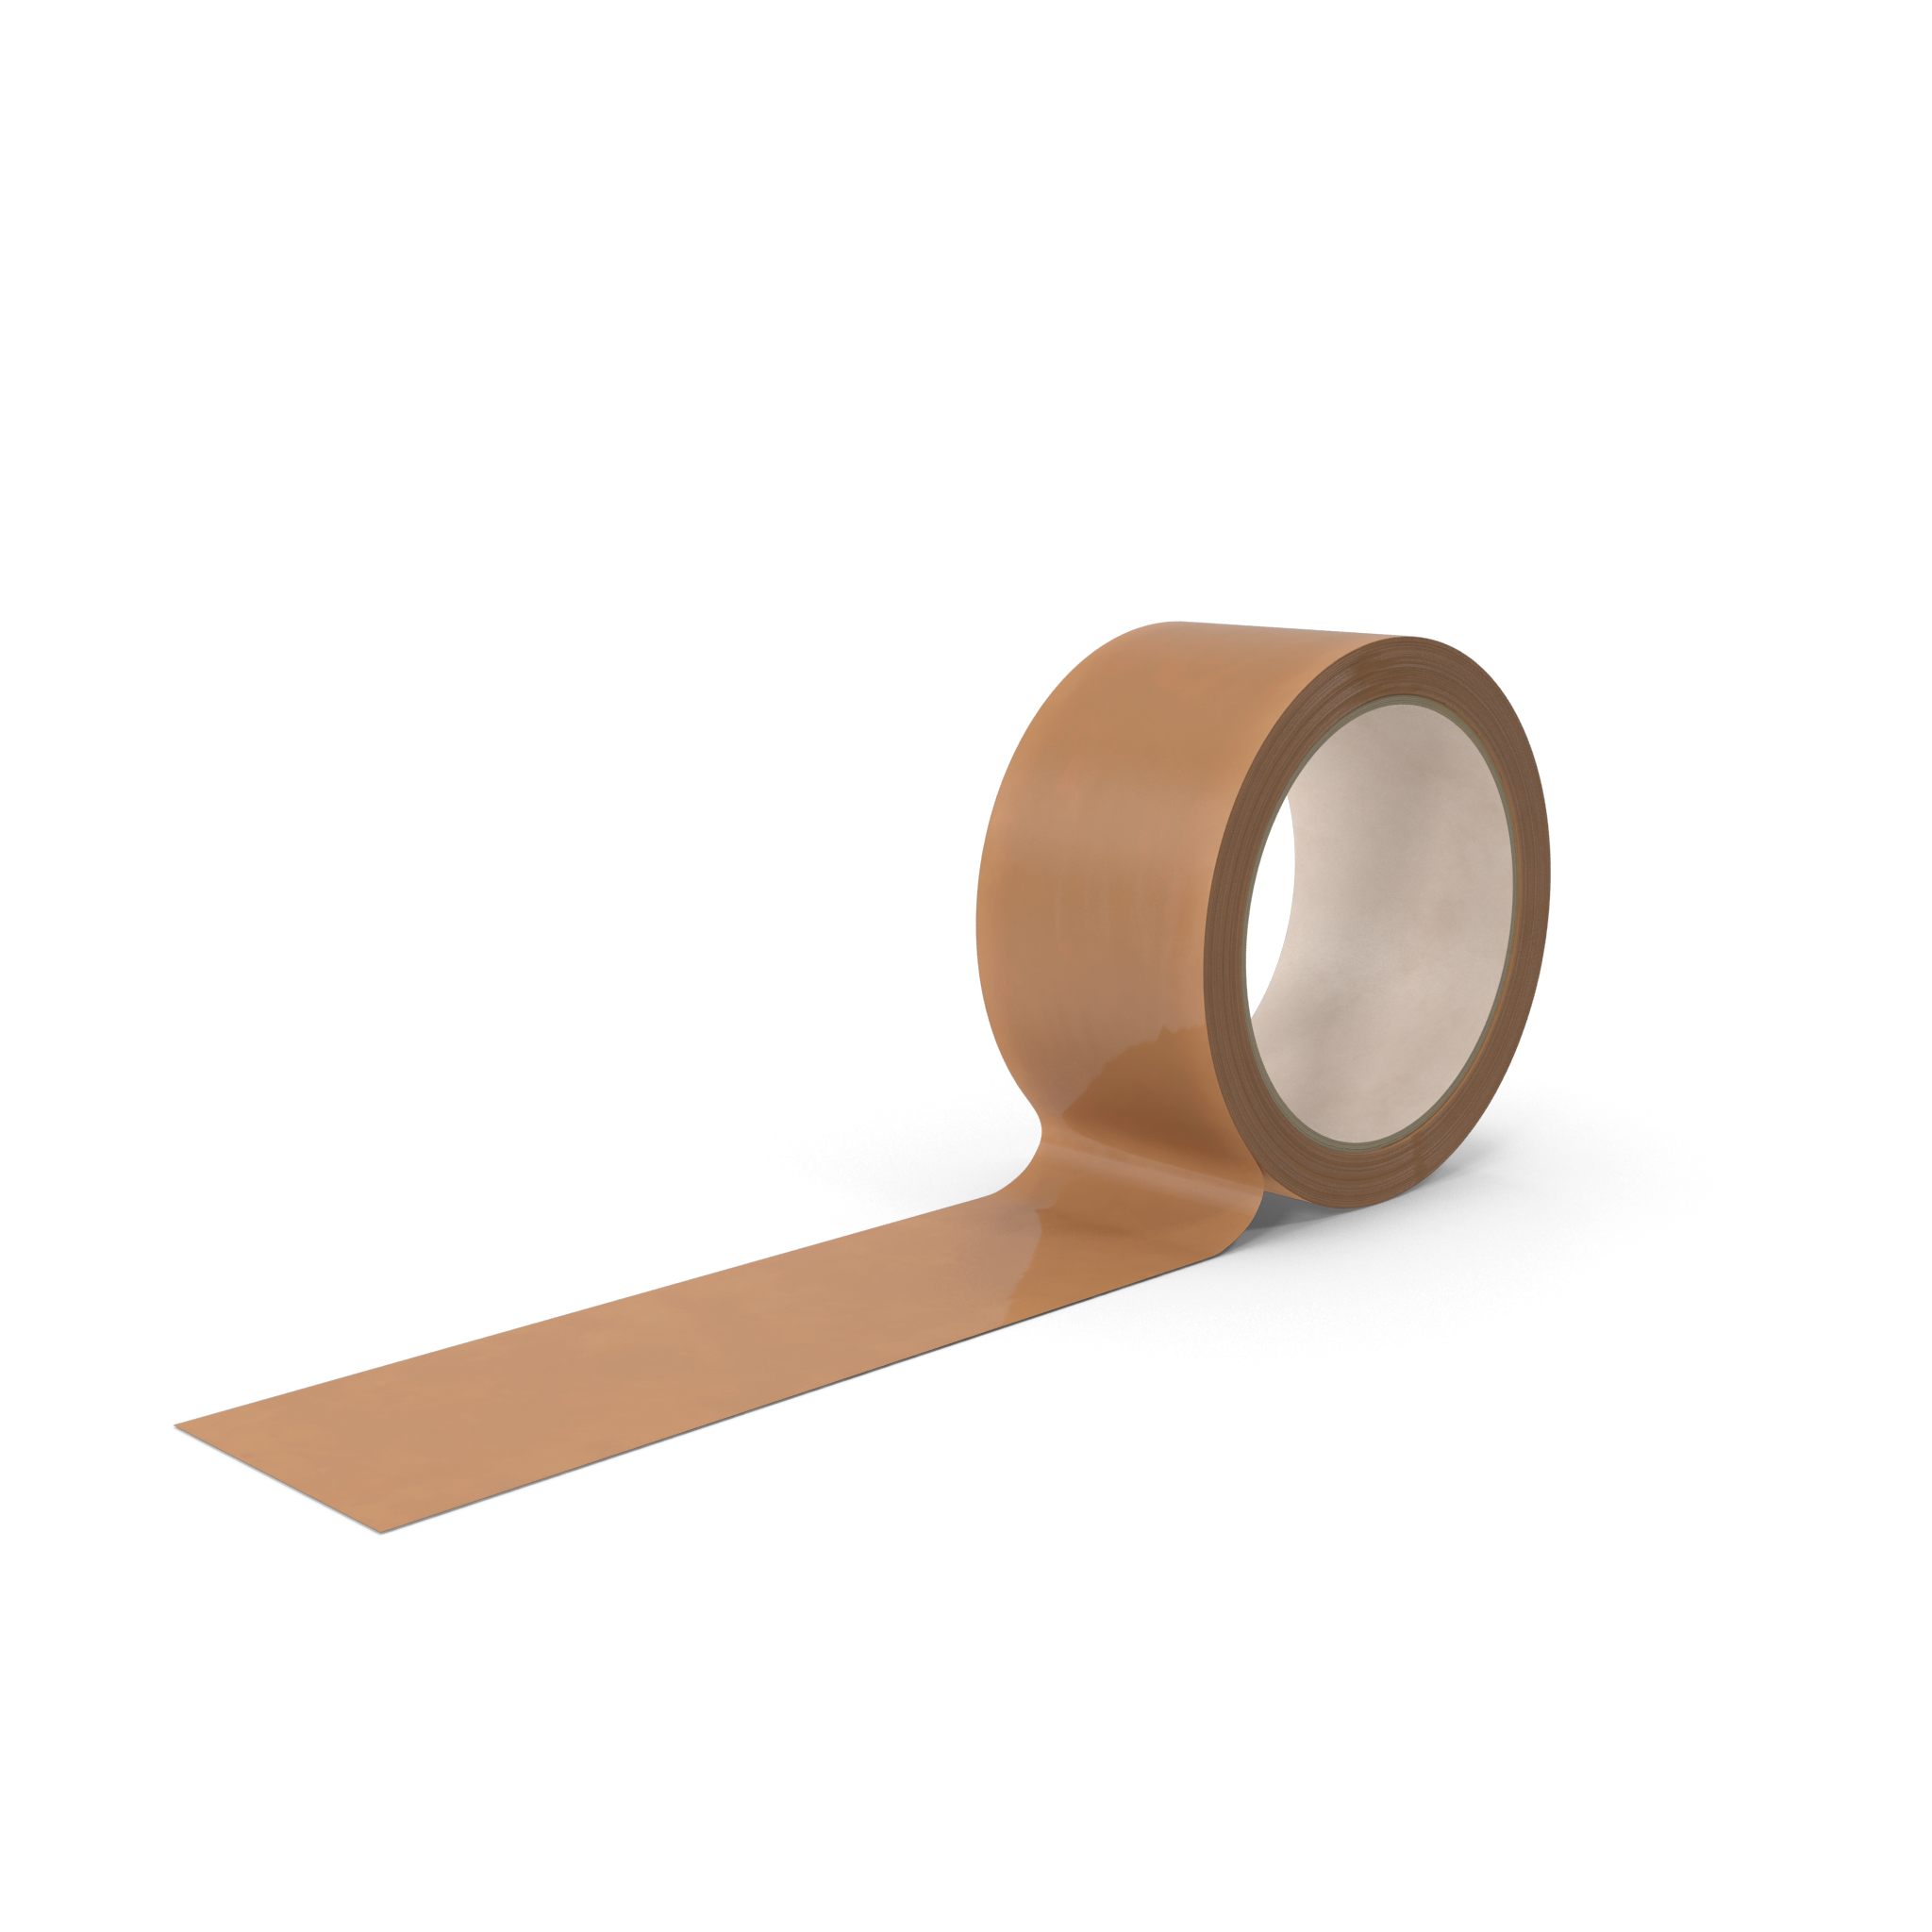 Packing Tape.H03.2k-squashed.png